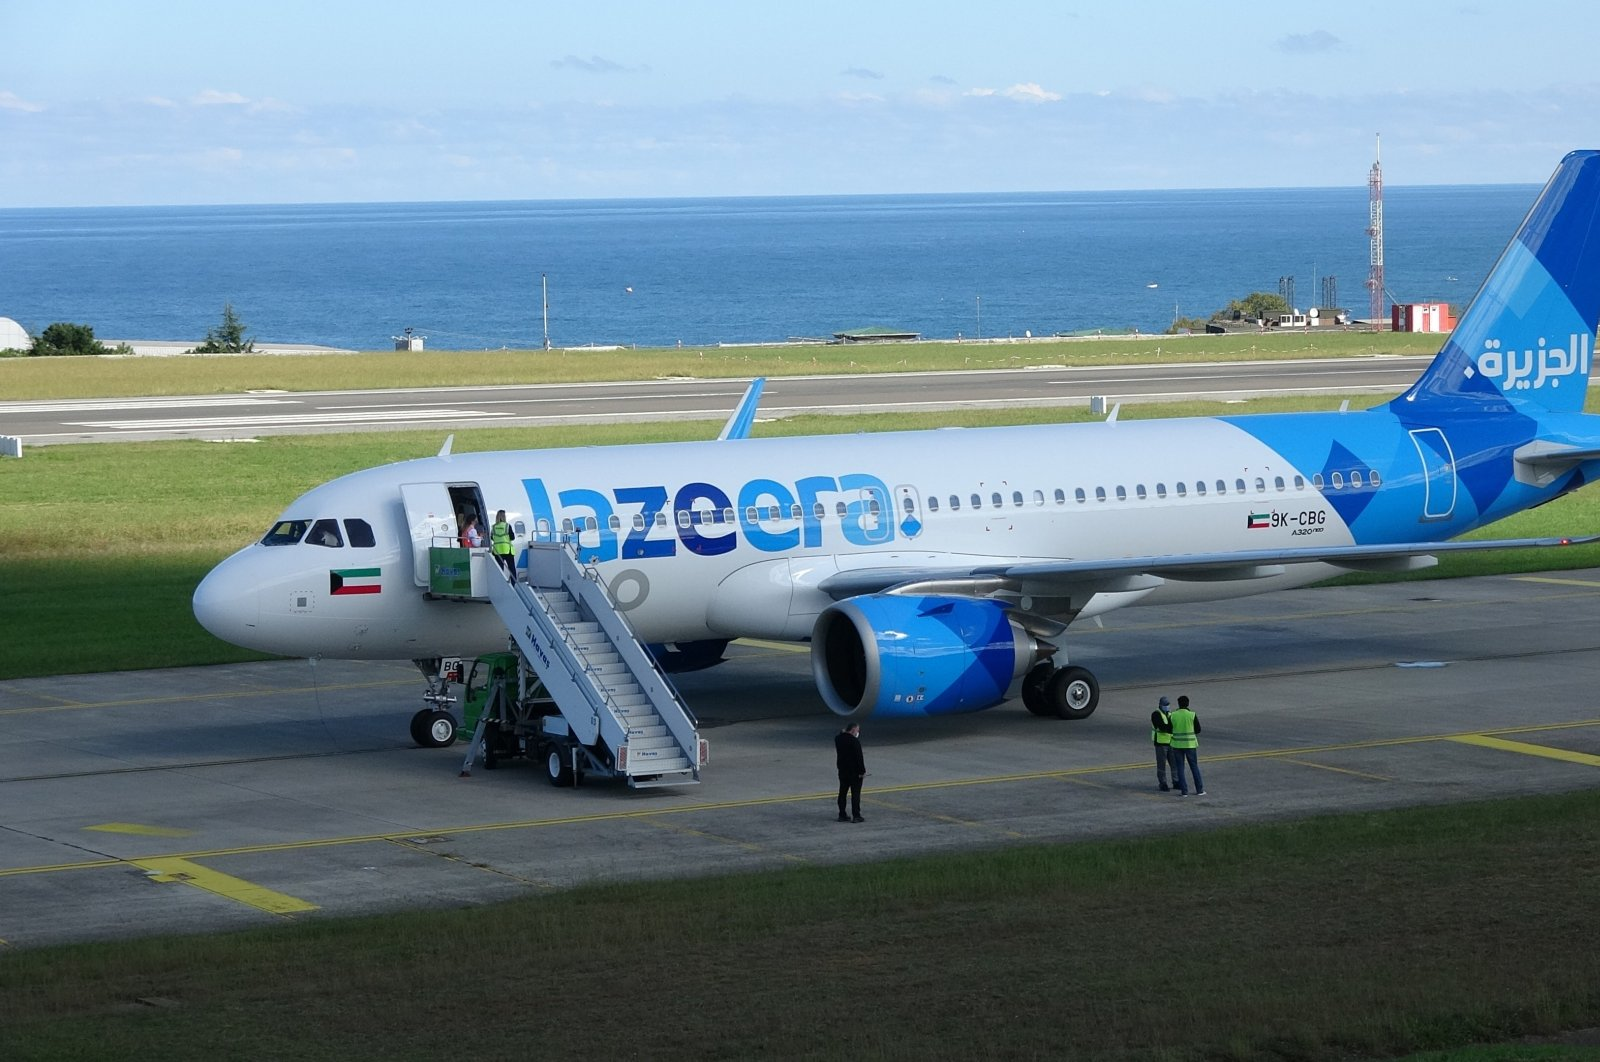 A view of the Jazeera Airways plane at the airport, in Trabzon, northern Turkey, Oct. 7, 2021. (İHA PHOTO)